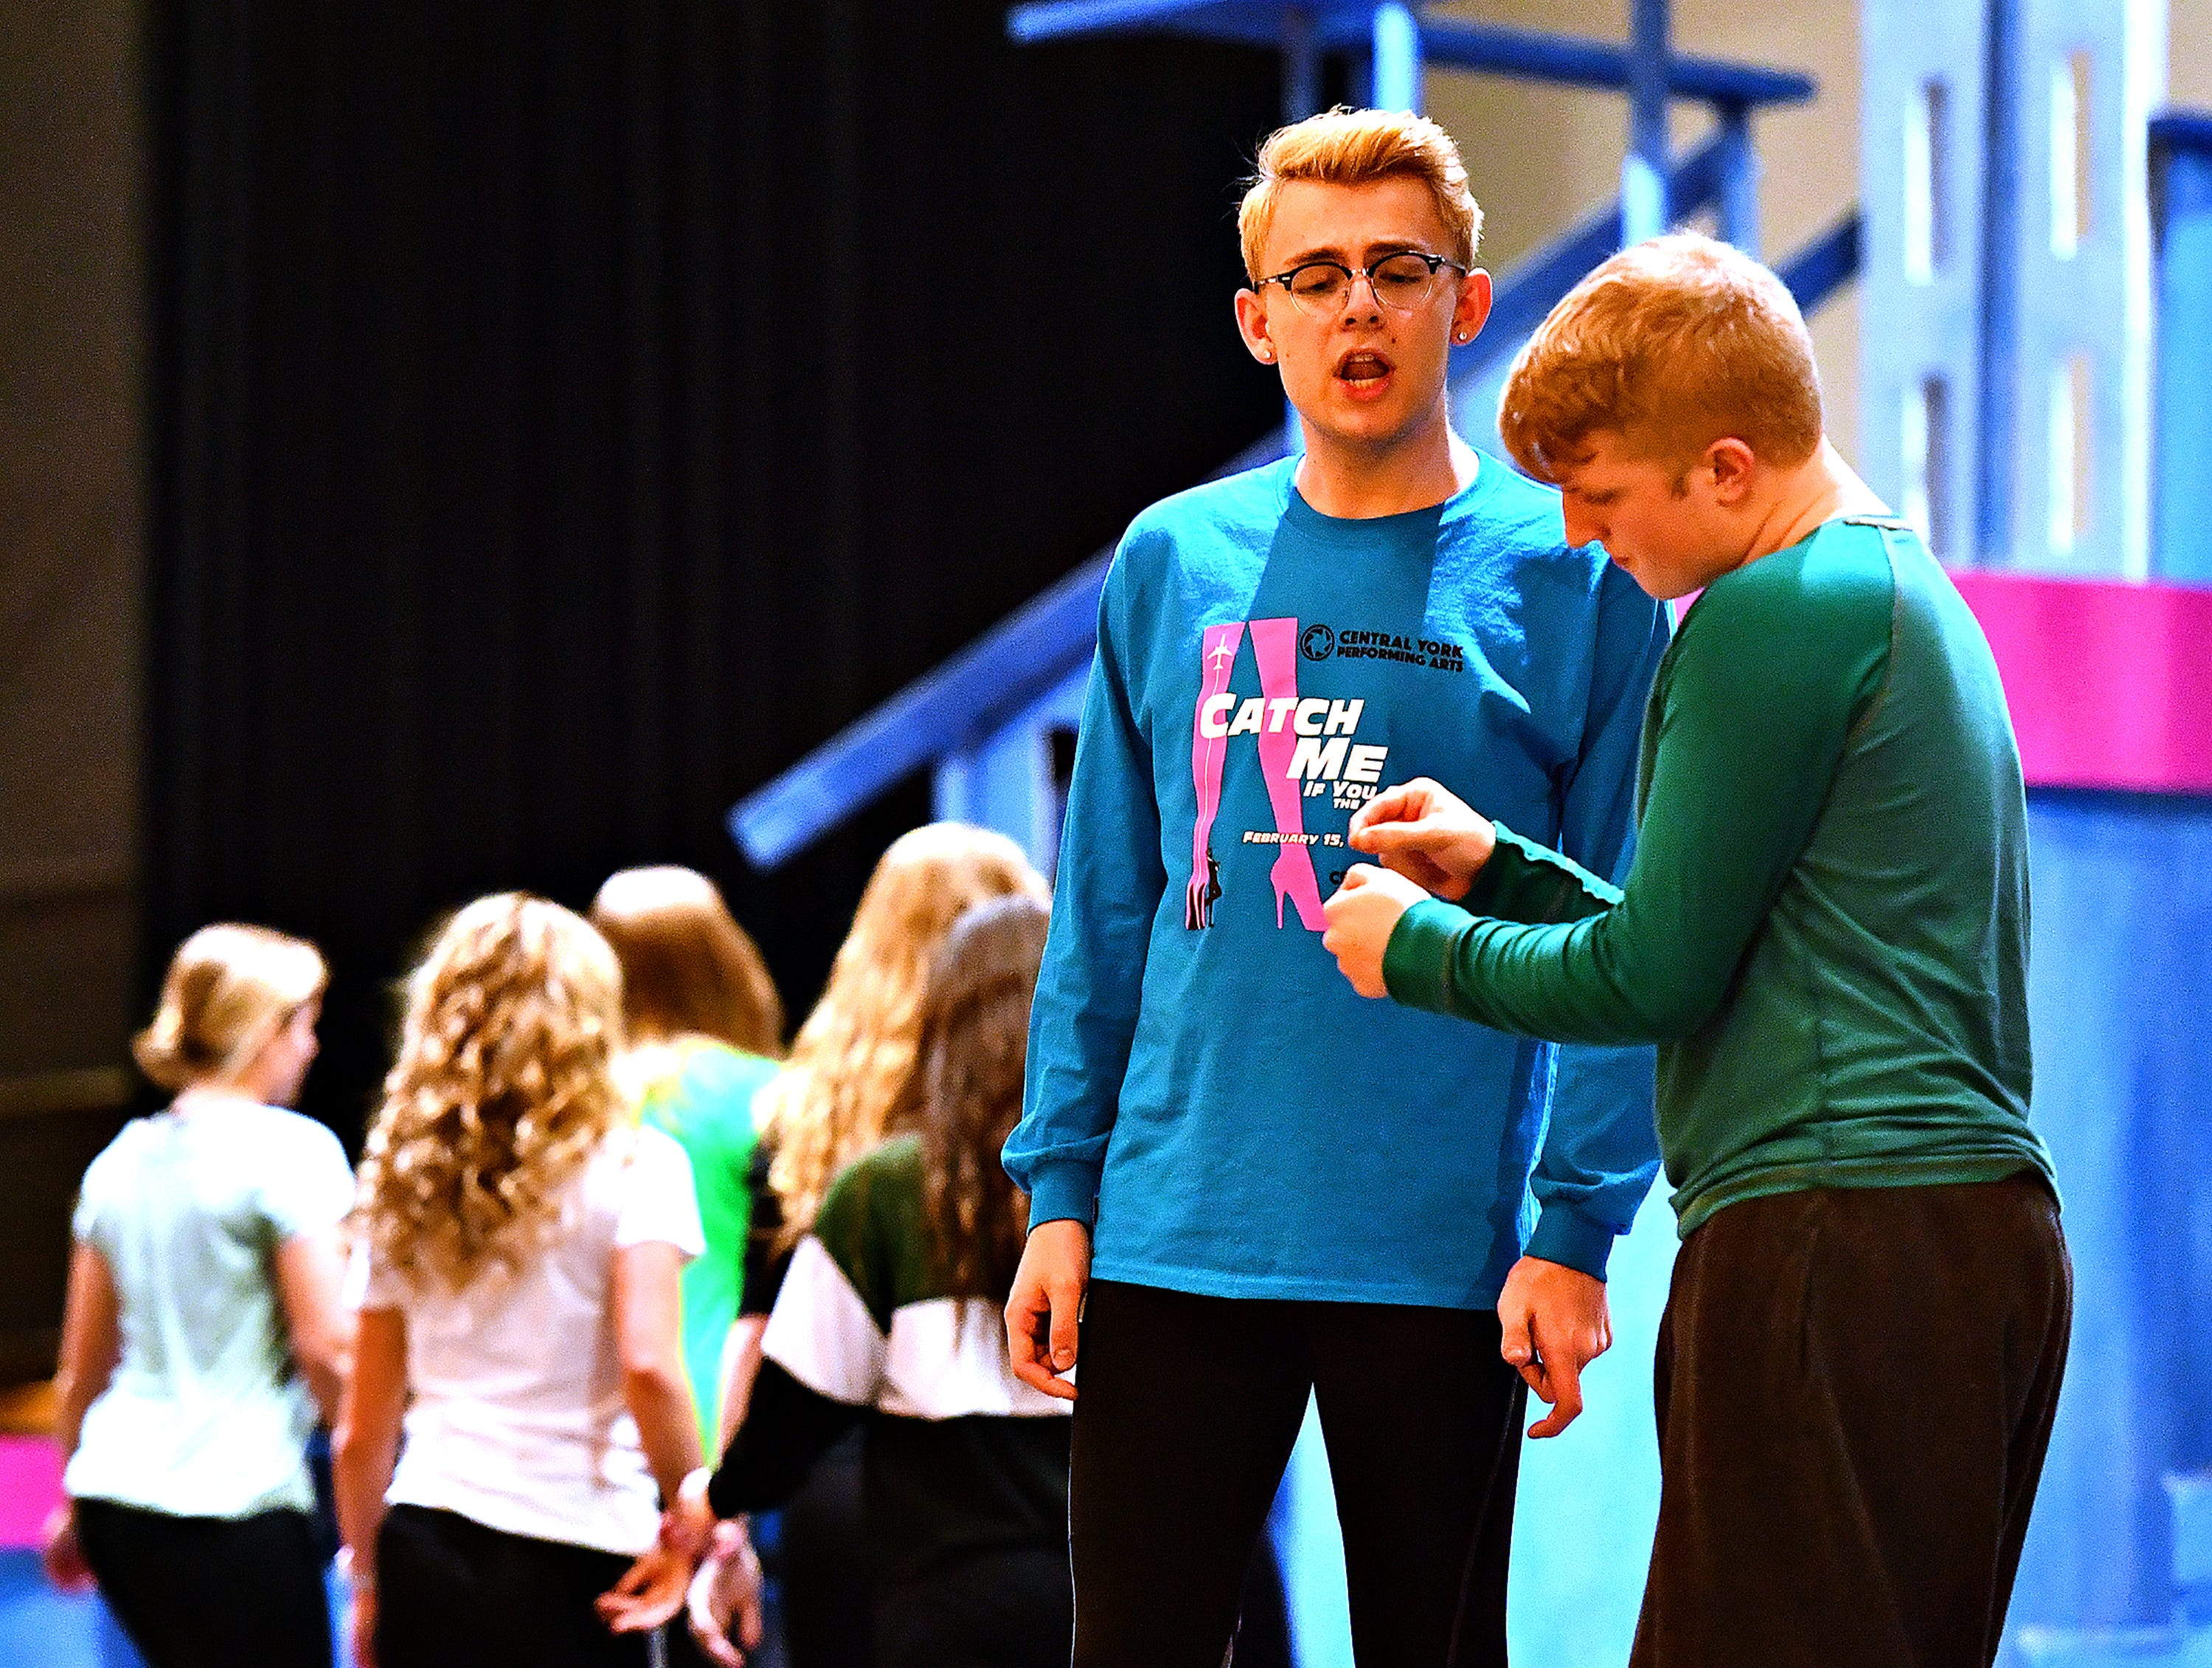 """Central York senior Koby Fink, second from right, plays Frank Abagnale, Jr., as students rehearse for their upcoming production of, """"Catch Me If You Can,"""" at Central York High School in Springettsbury Township, Wednesday, Feb. 6, 2019. Central York is the first York area school to perform the production Feb. 15-17. Dawn J. Sagert photo"""